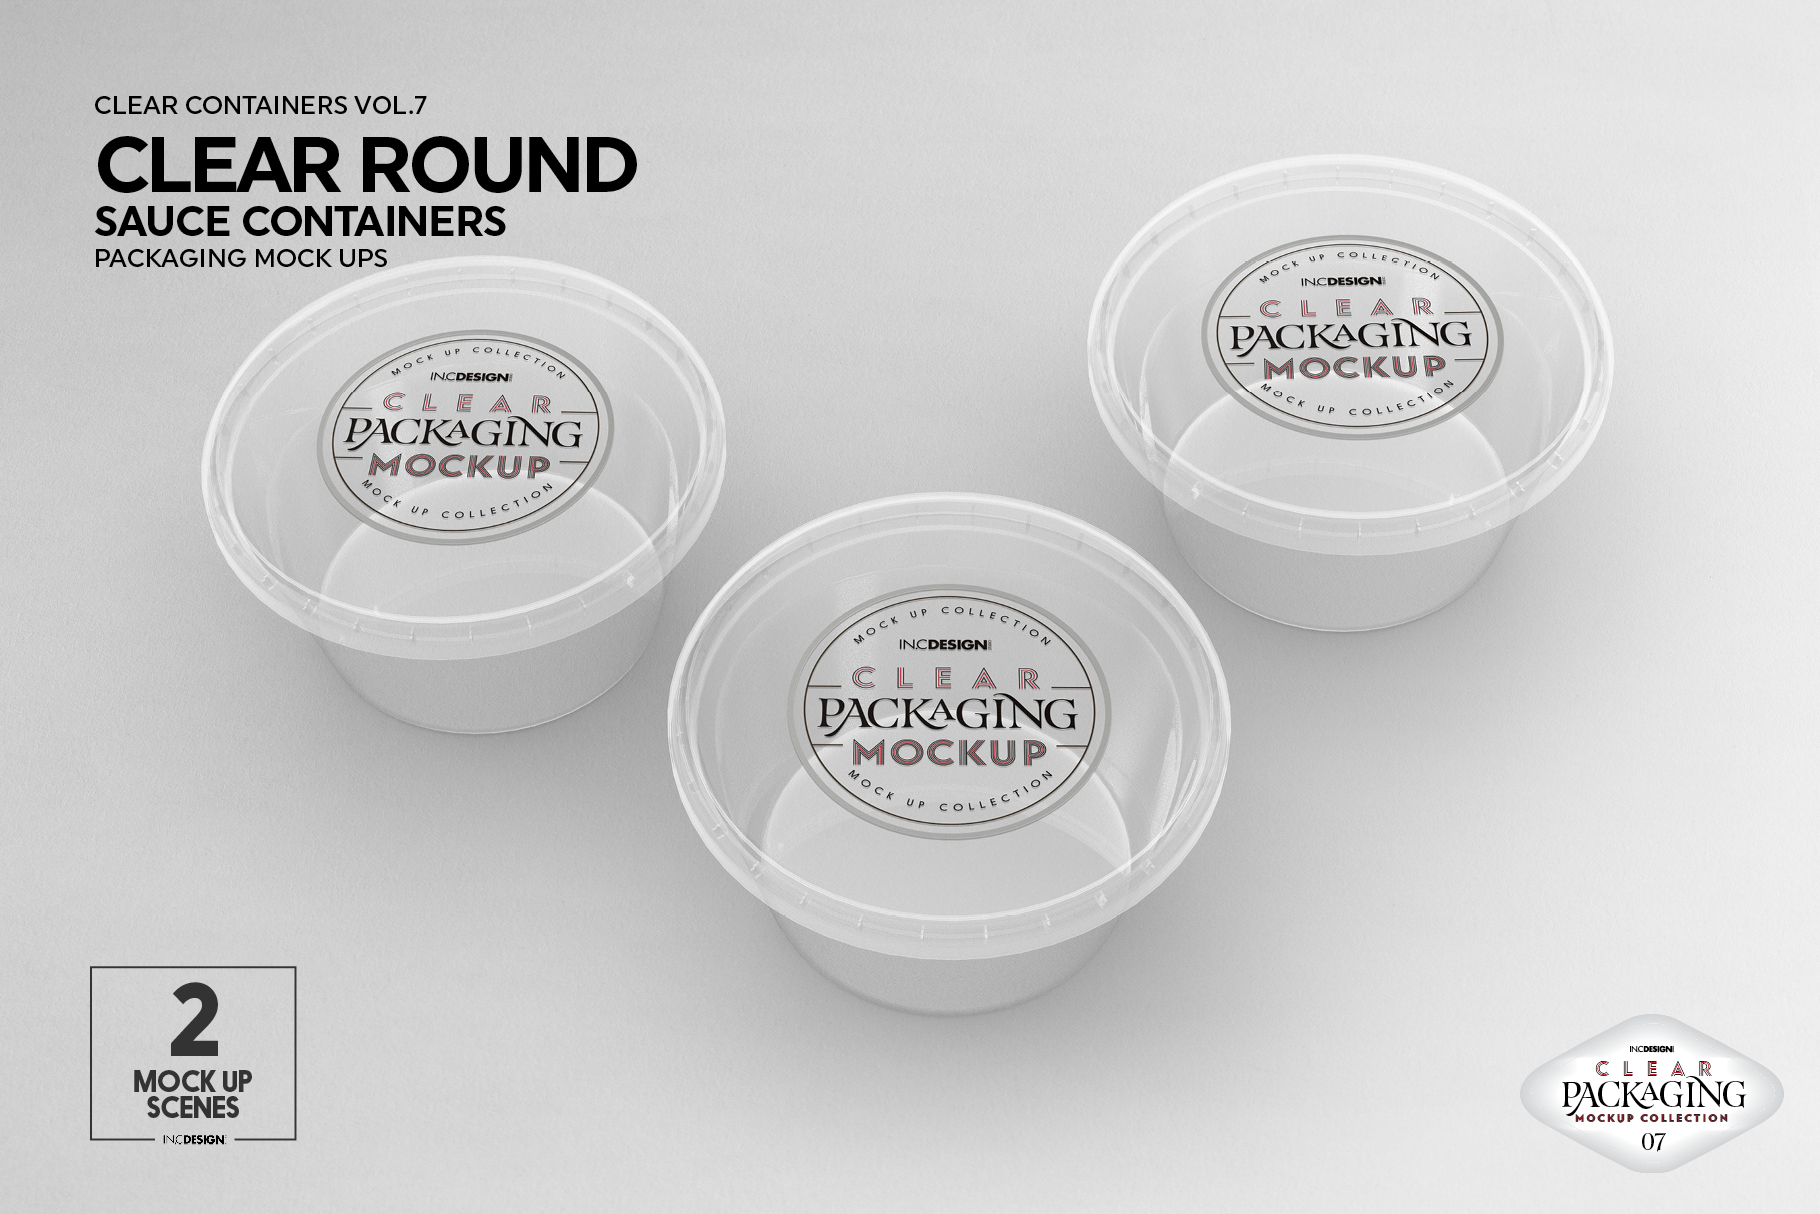 VOL.7 Clear Packaging Mockup Collection example image 2